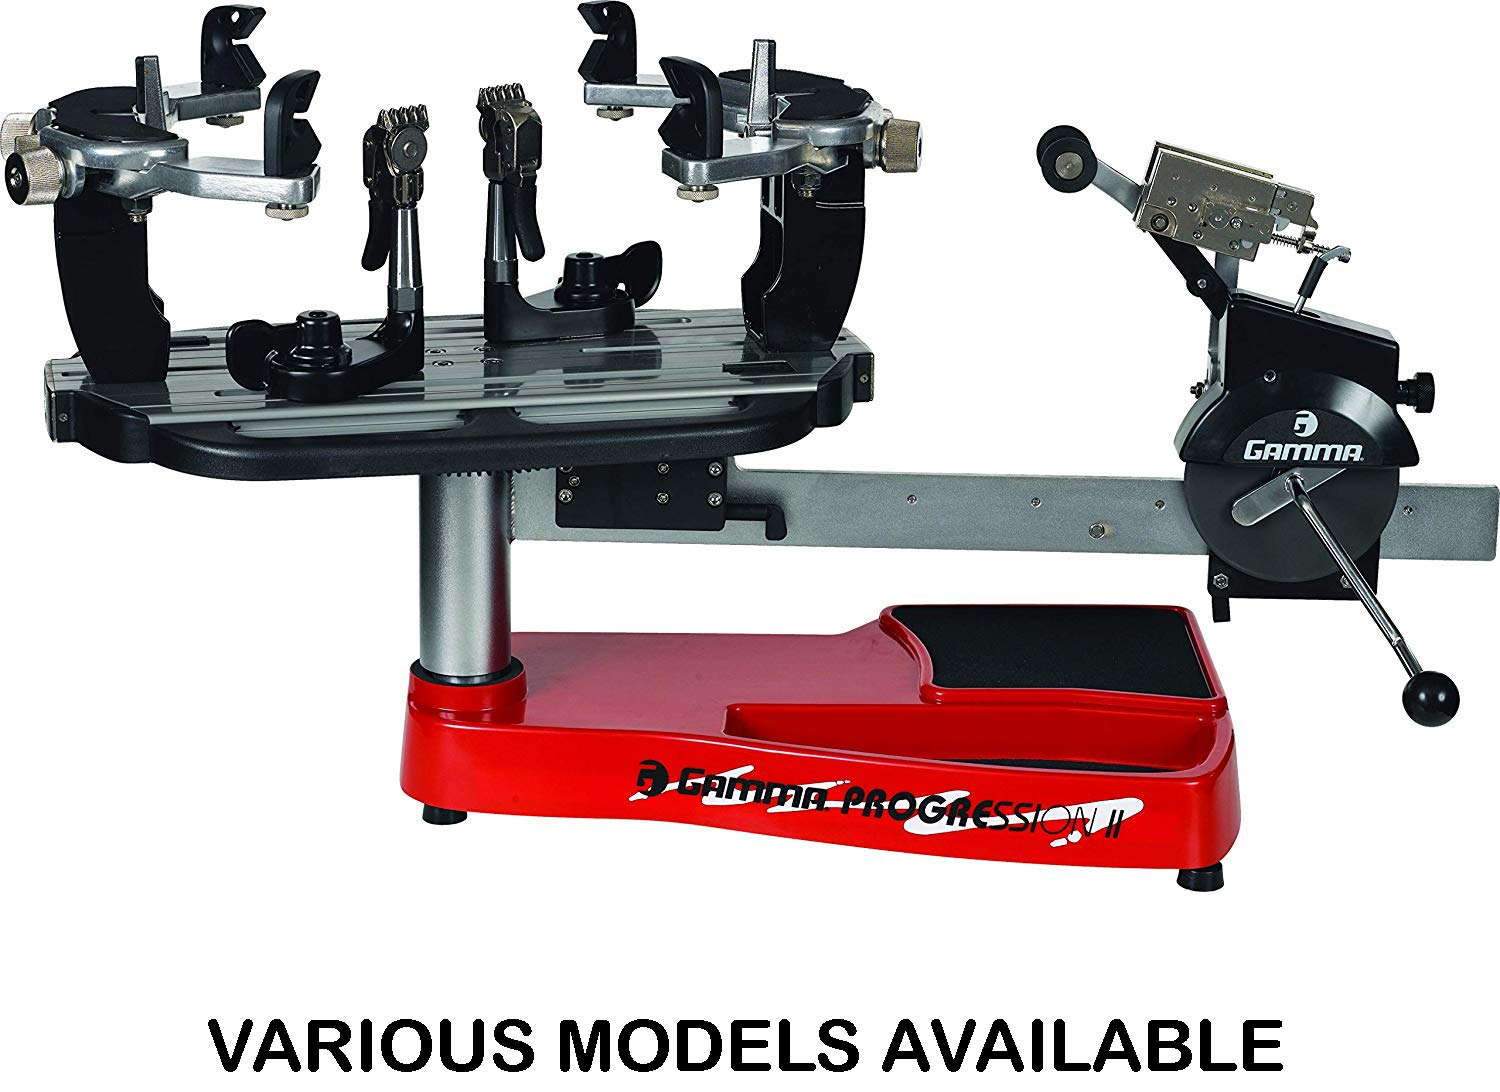 Gamma Progression ST II Machine: 360 Degree Rotation Tabletop Racquet Stringer Machines with Stringing Accessories/Racket String Tools - Strings Racquetball, Squash, Tennis or Badminton Rackets